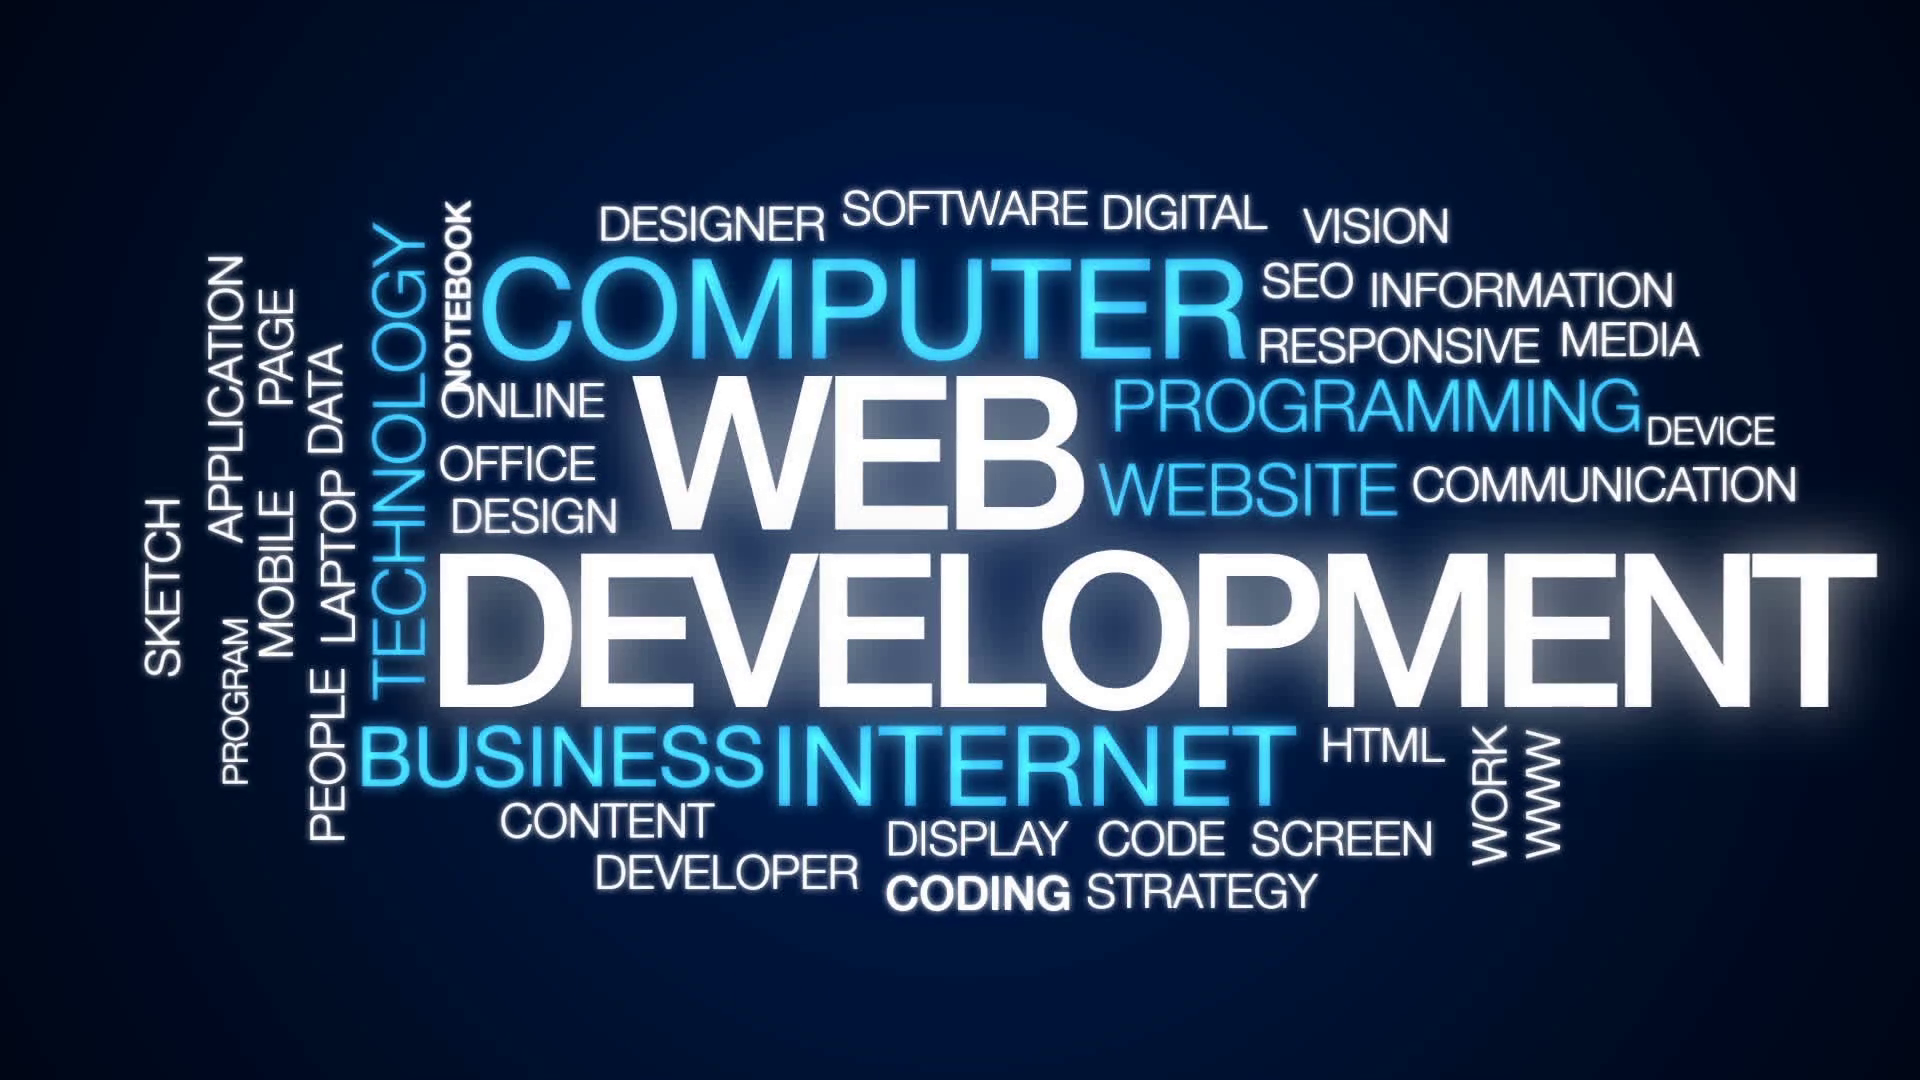 What Is The Importance Of Web Development?